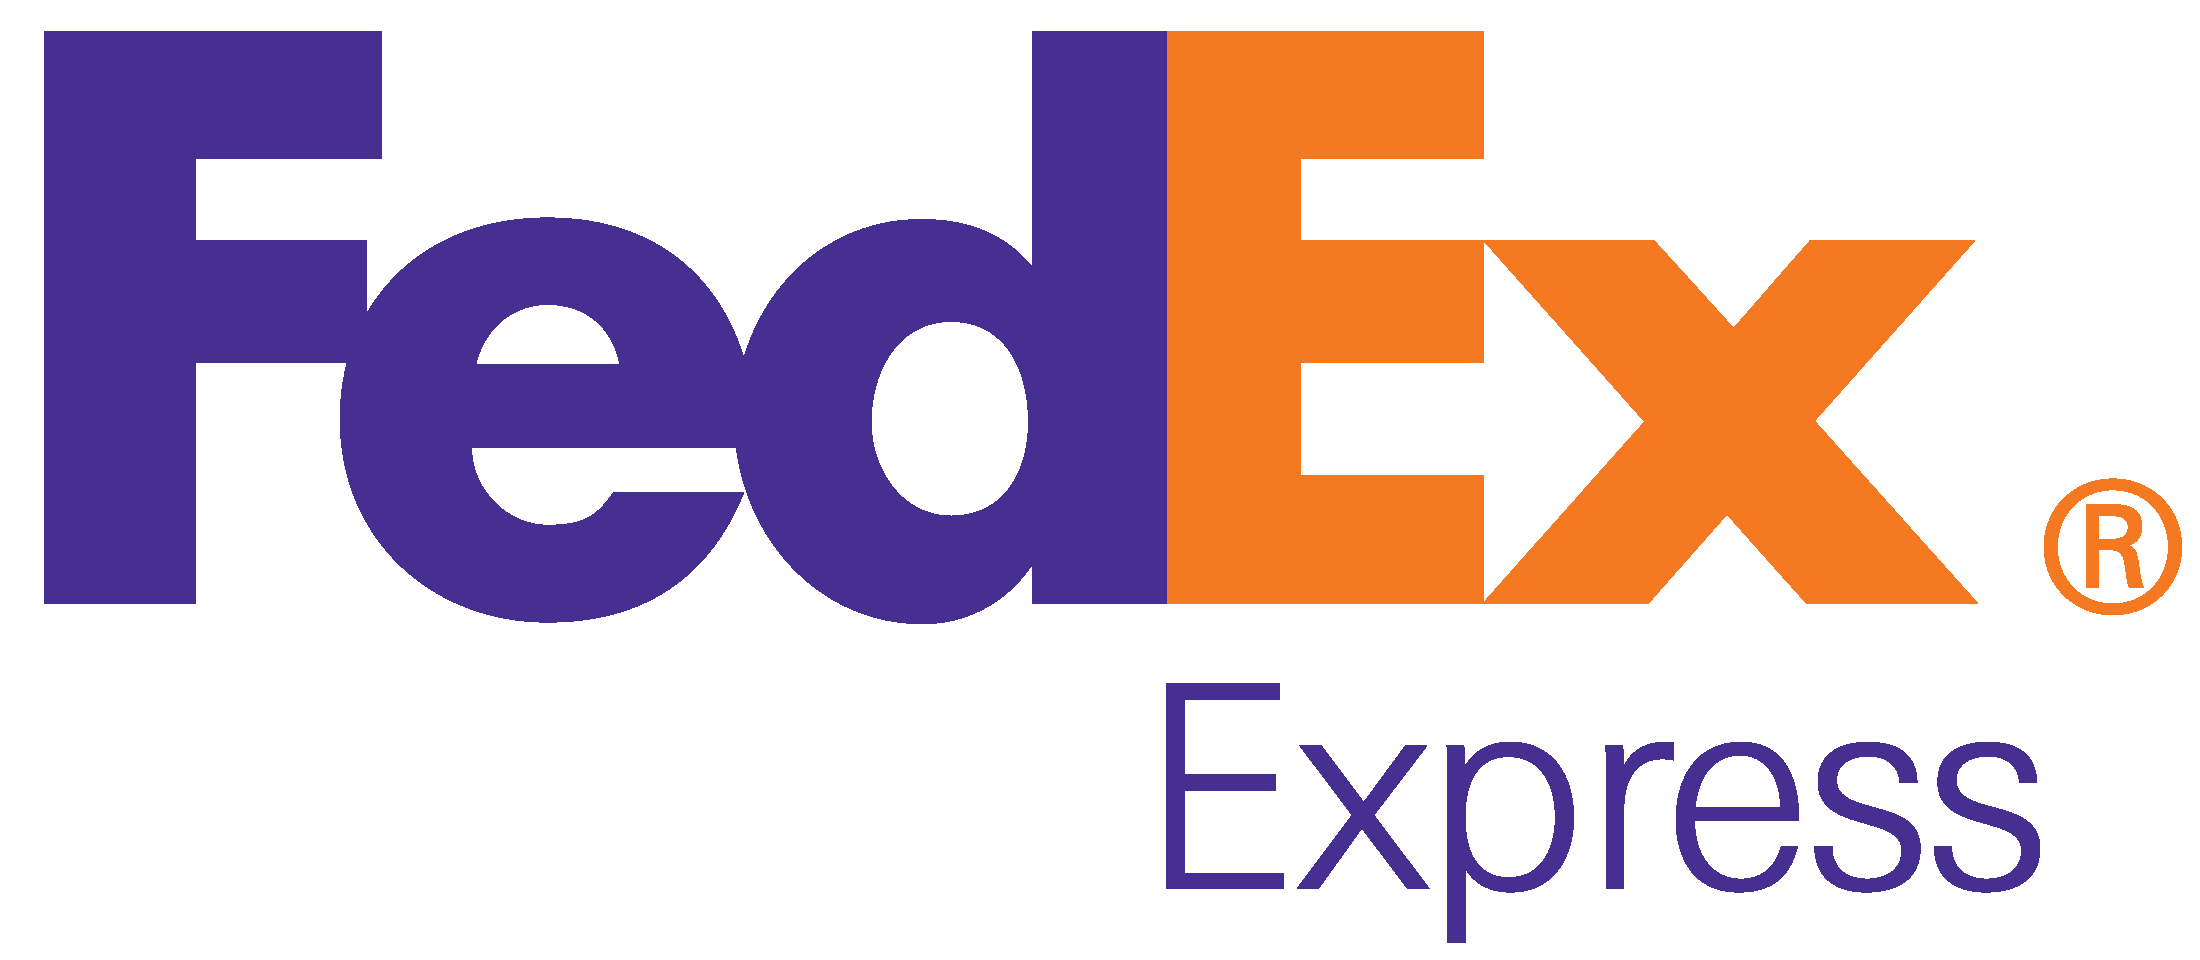 FedEx Express the most reliable shipper for giant fortune cookies